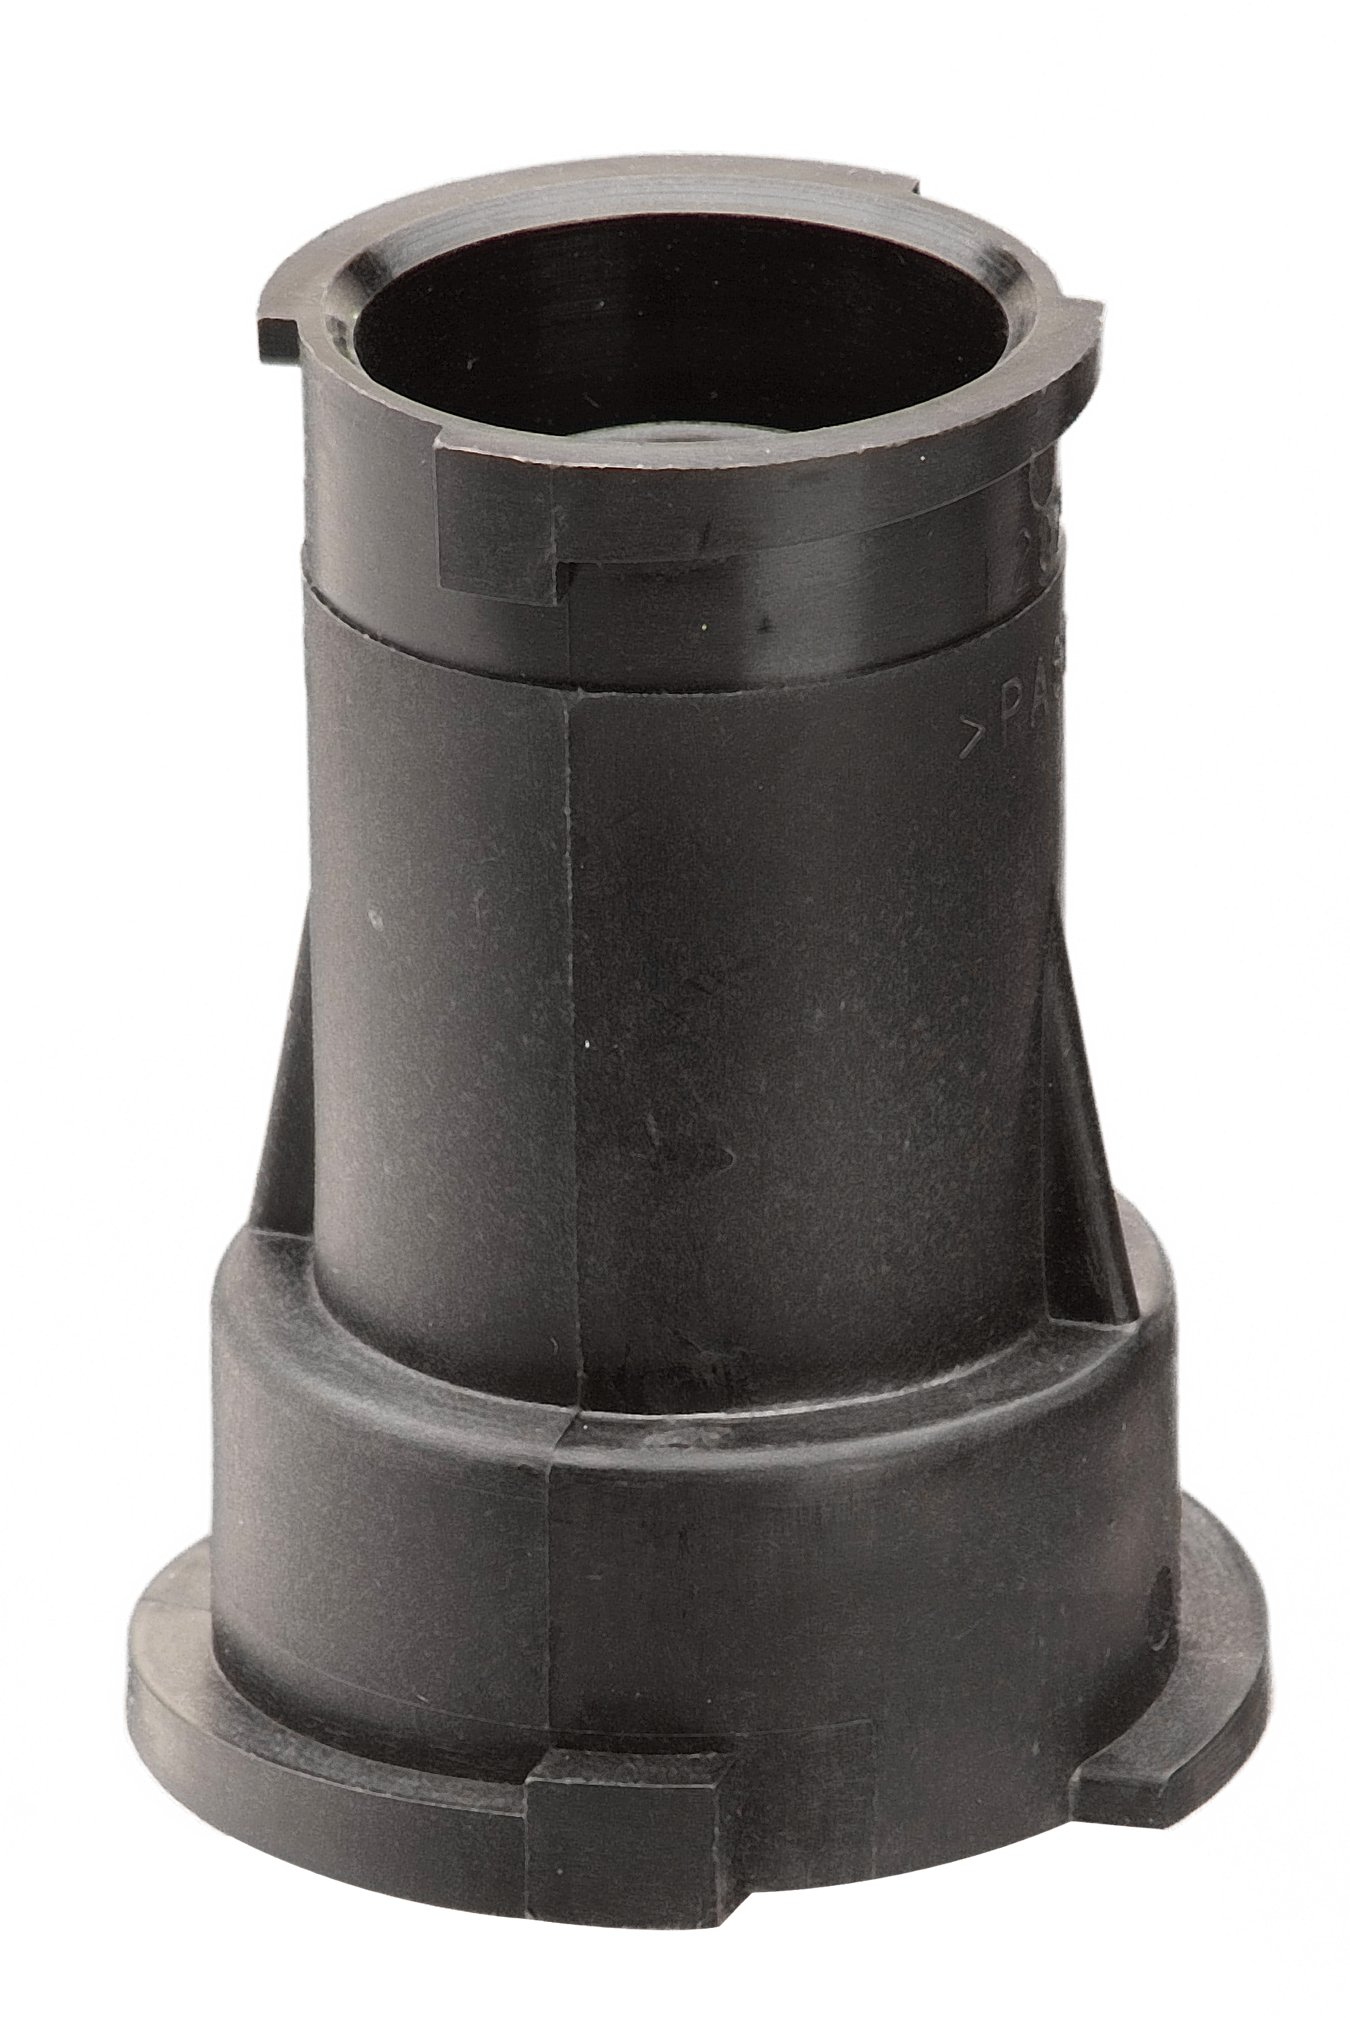 Stant 12024 Radiator Cap Adapter by Stant